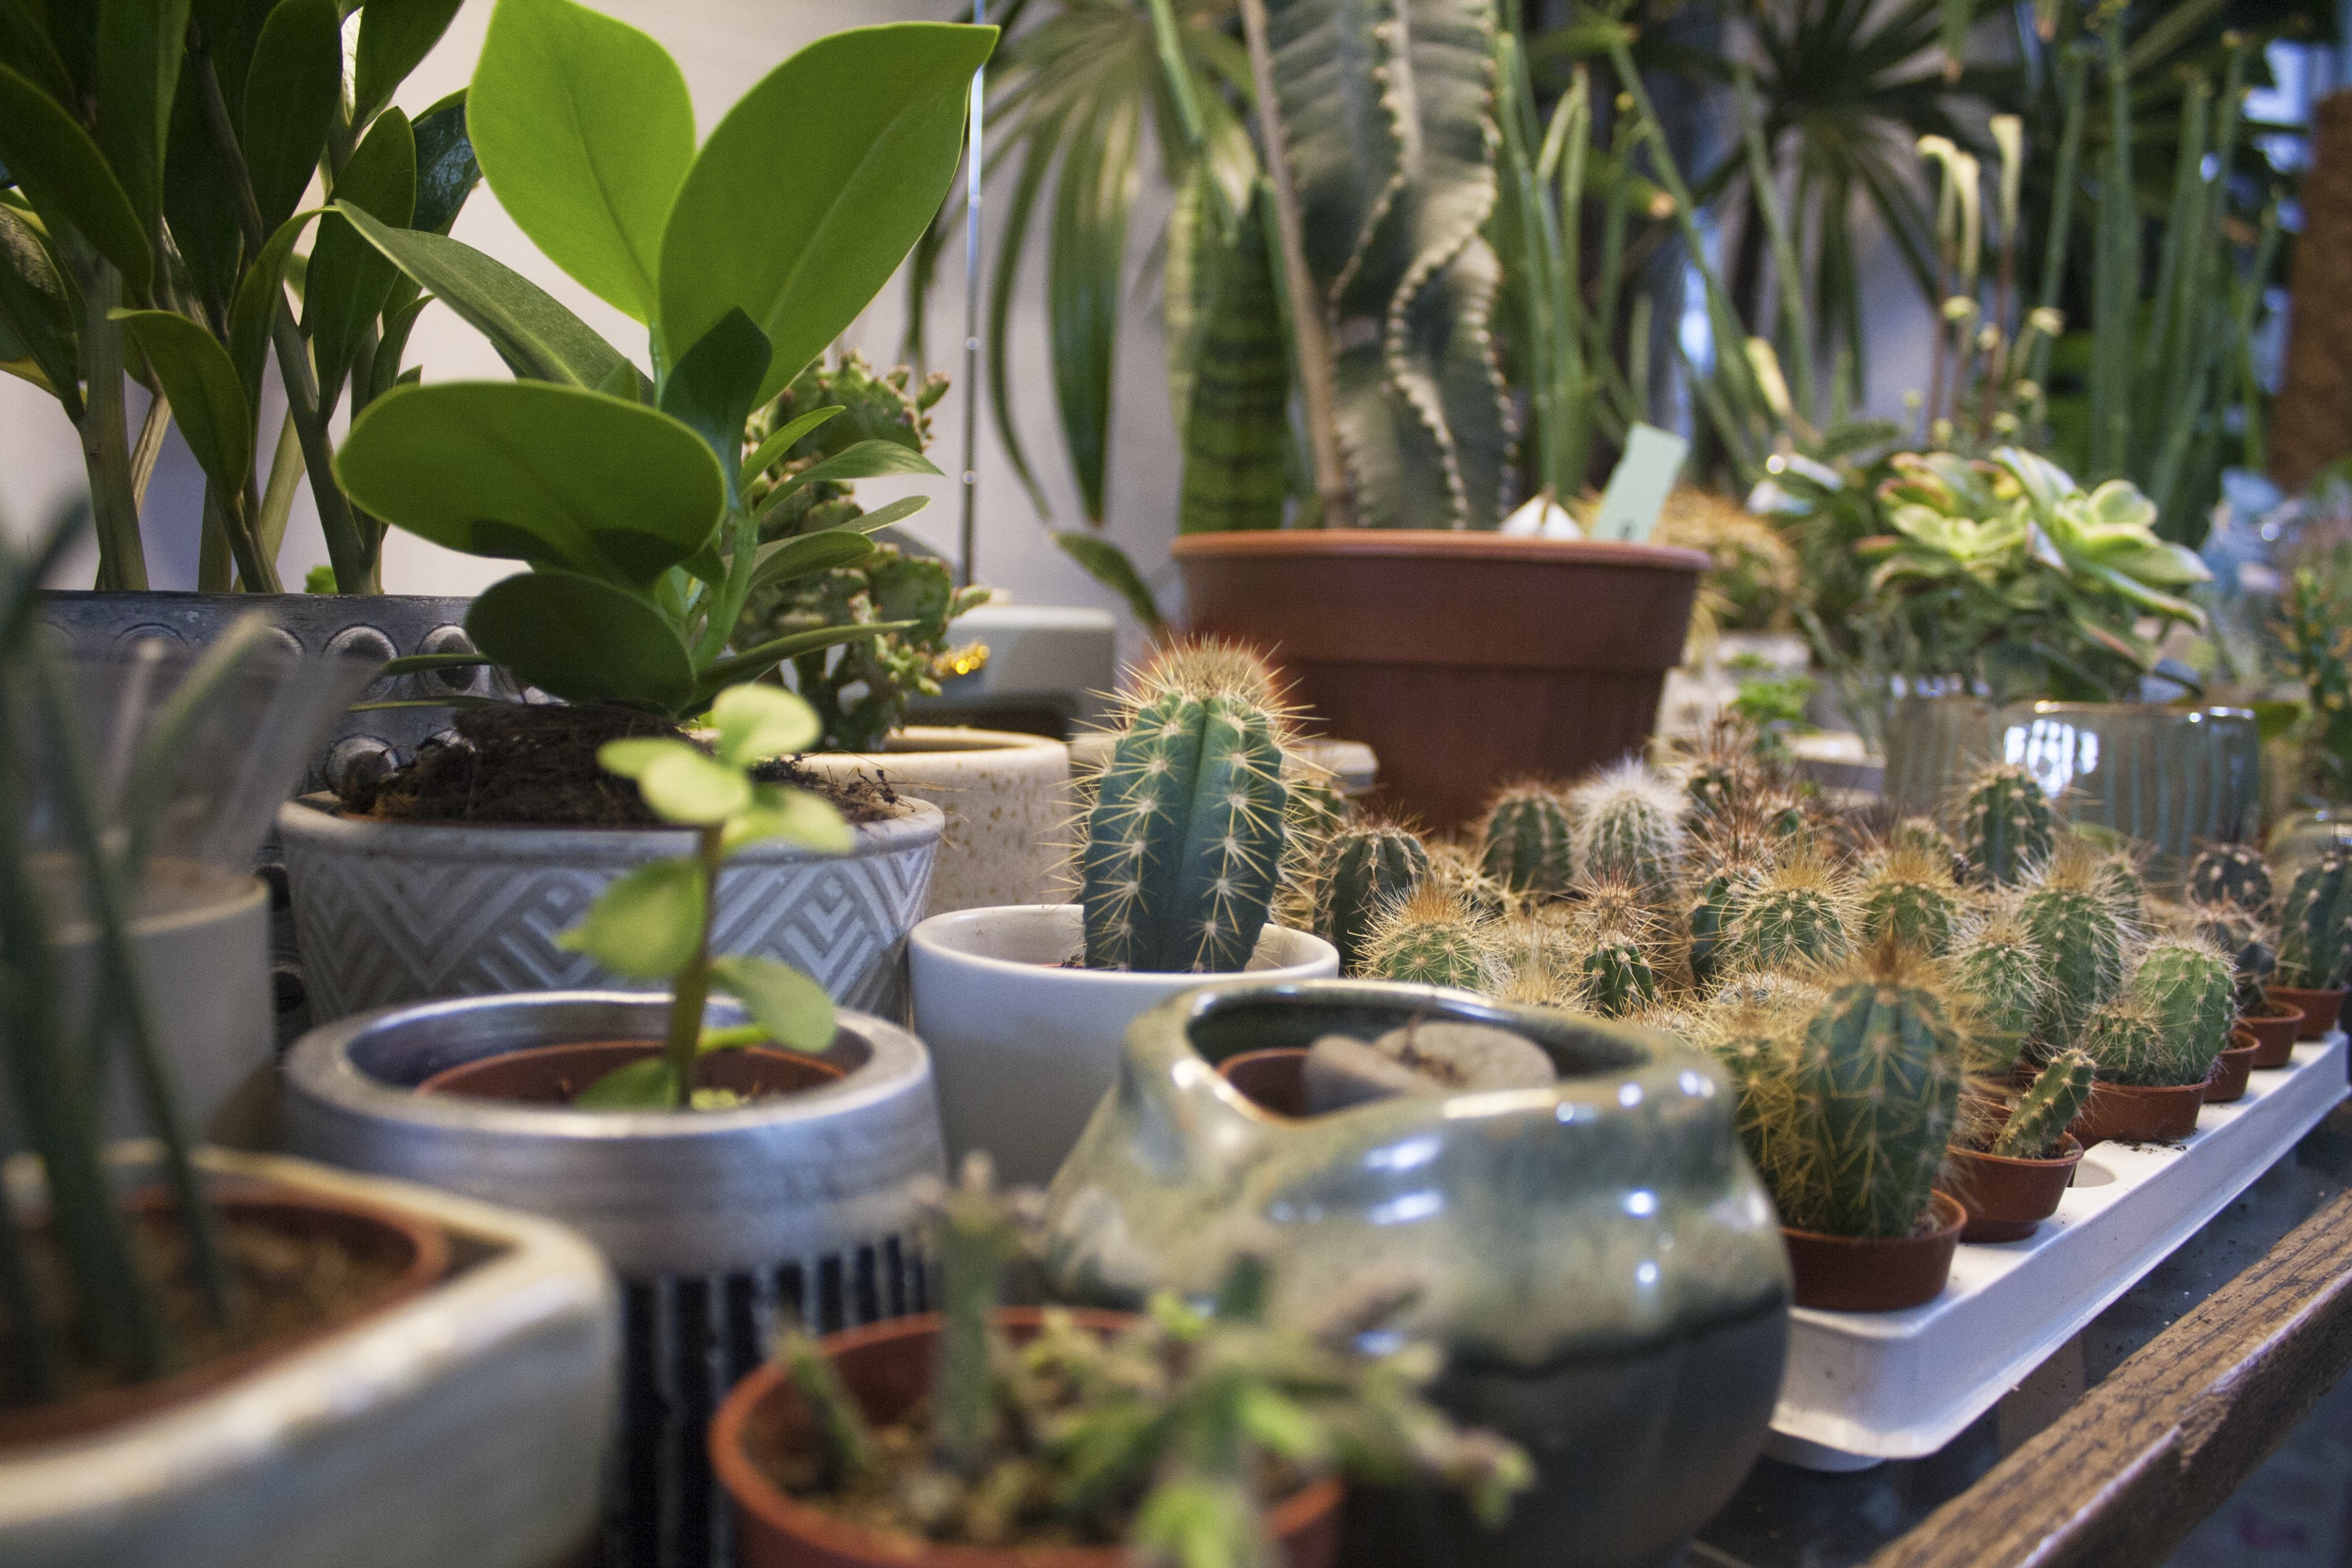 Cacti and plants at Conservatory Archives, Hackney